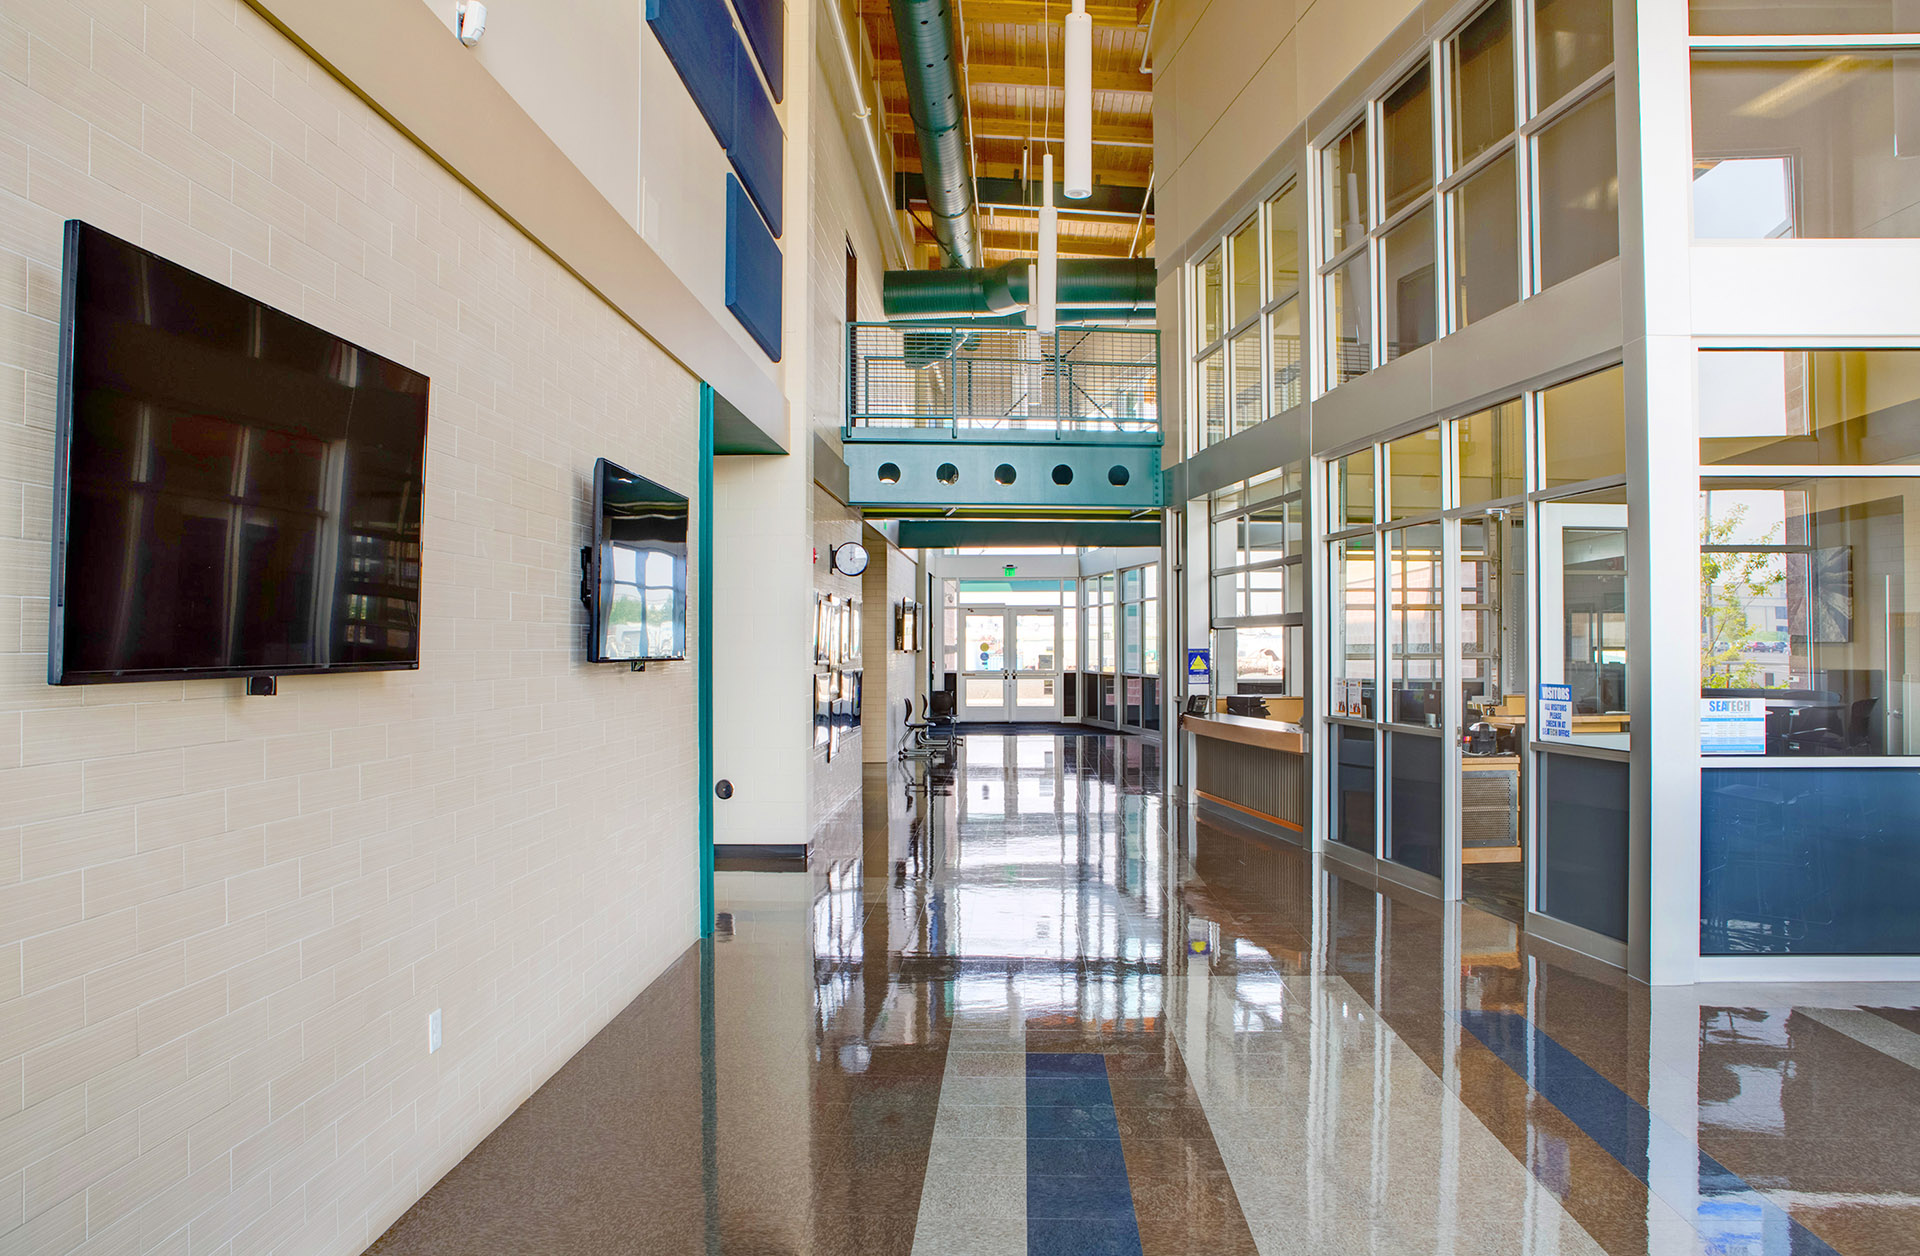 Southeast Area Technical Skills Center Entry Hall